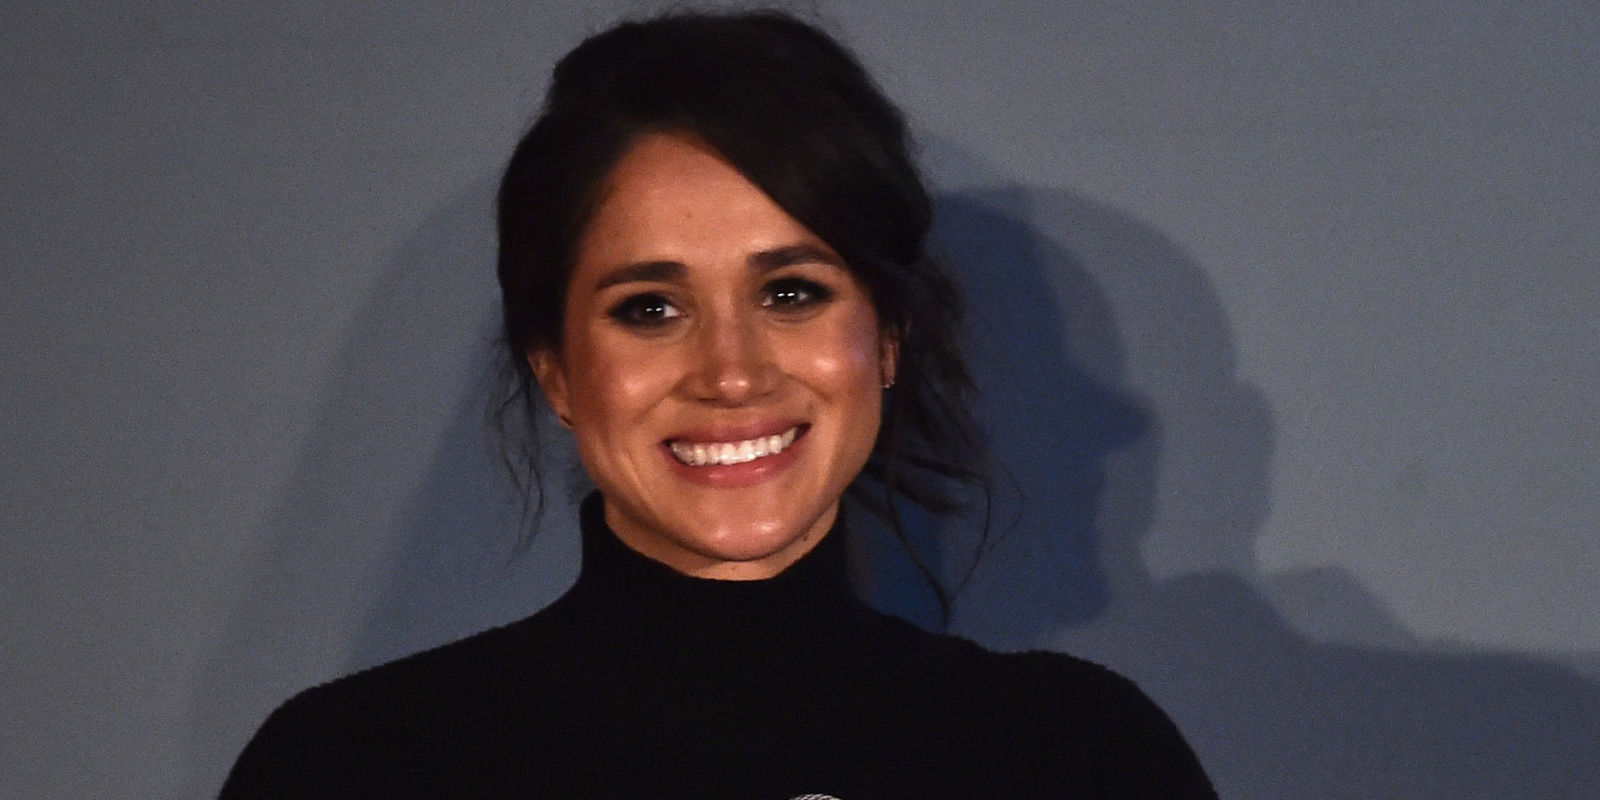 Someone Asked Meghan Markle If She Wants To Prince Harry